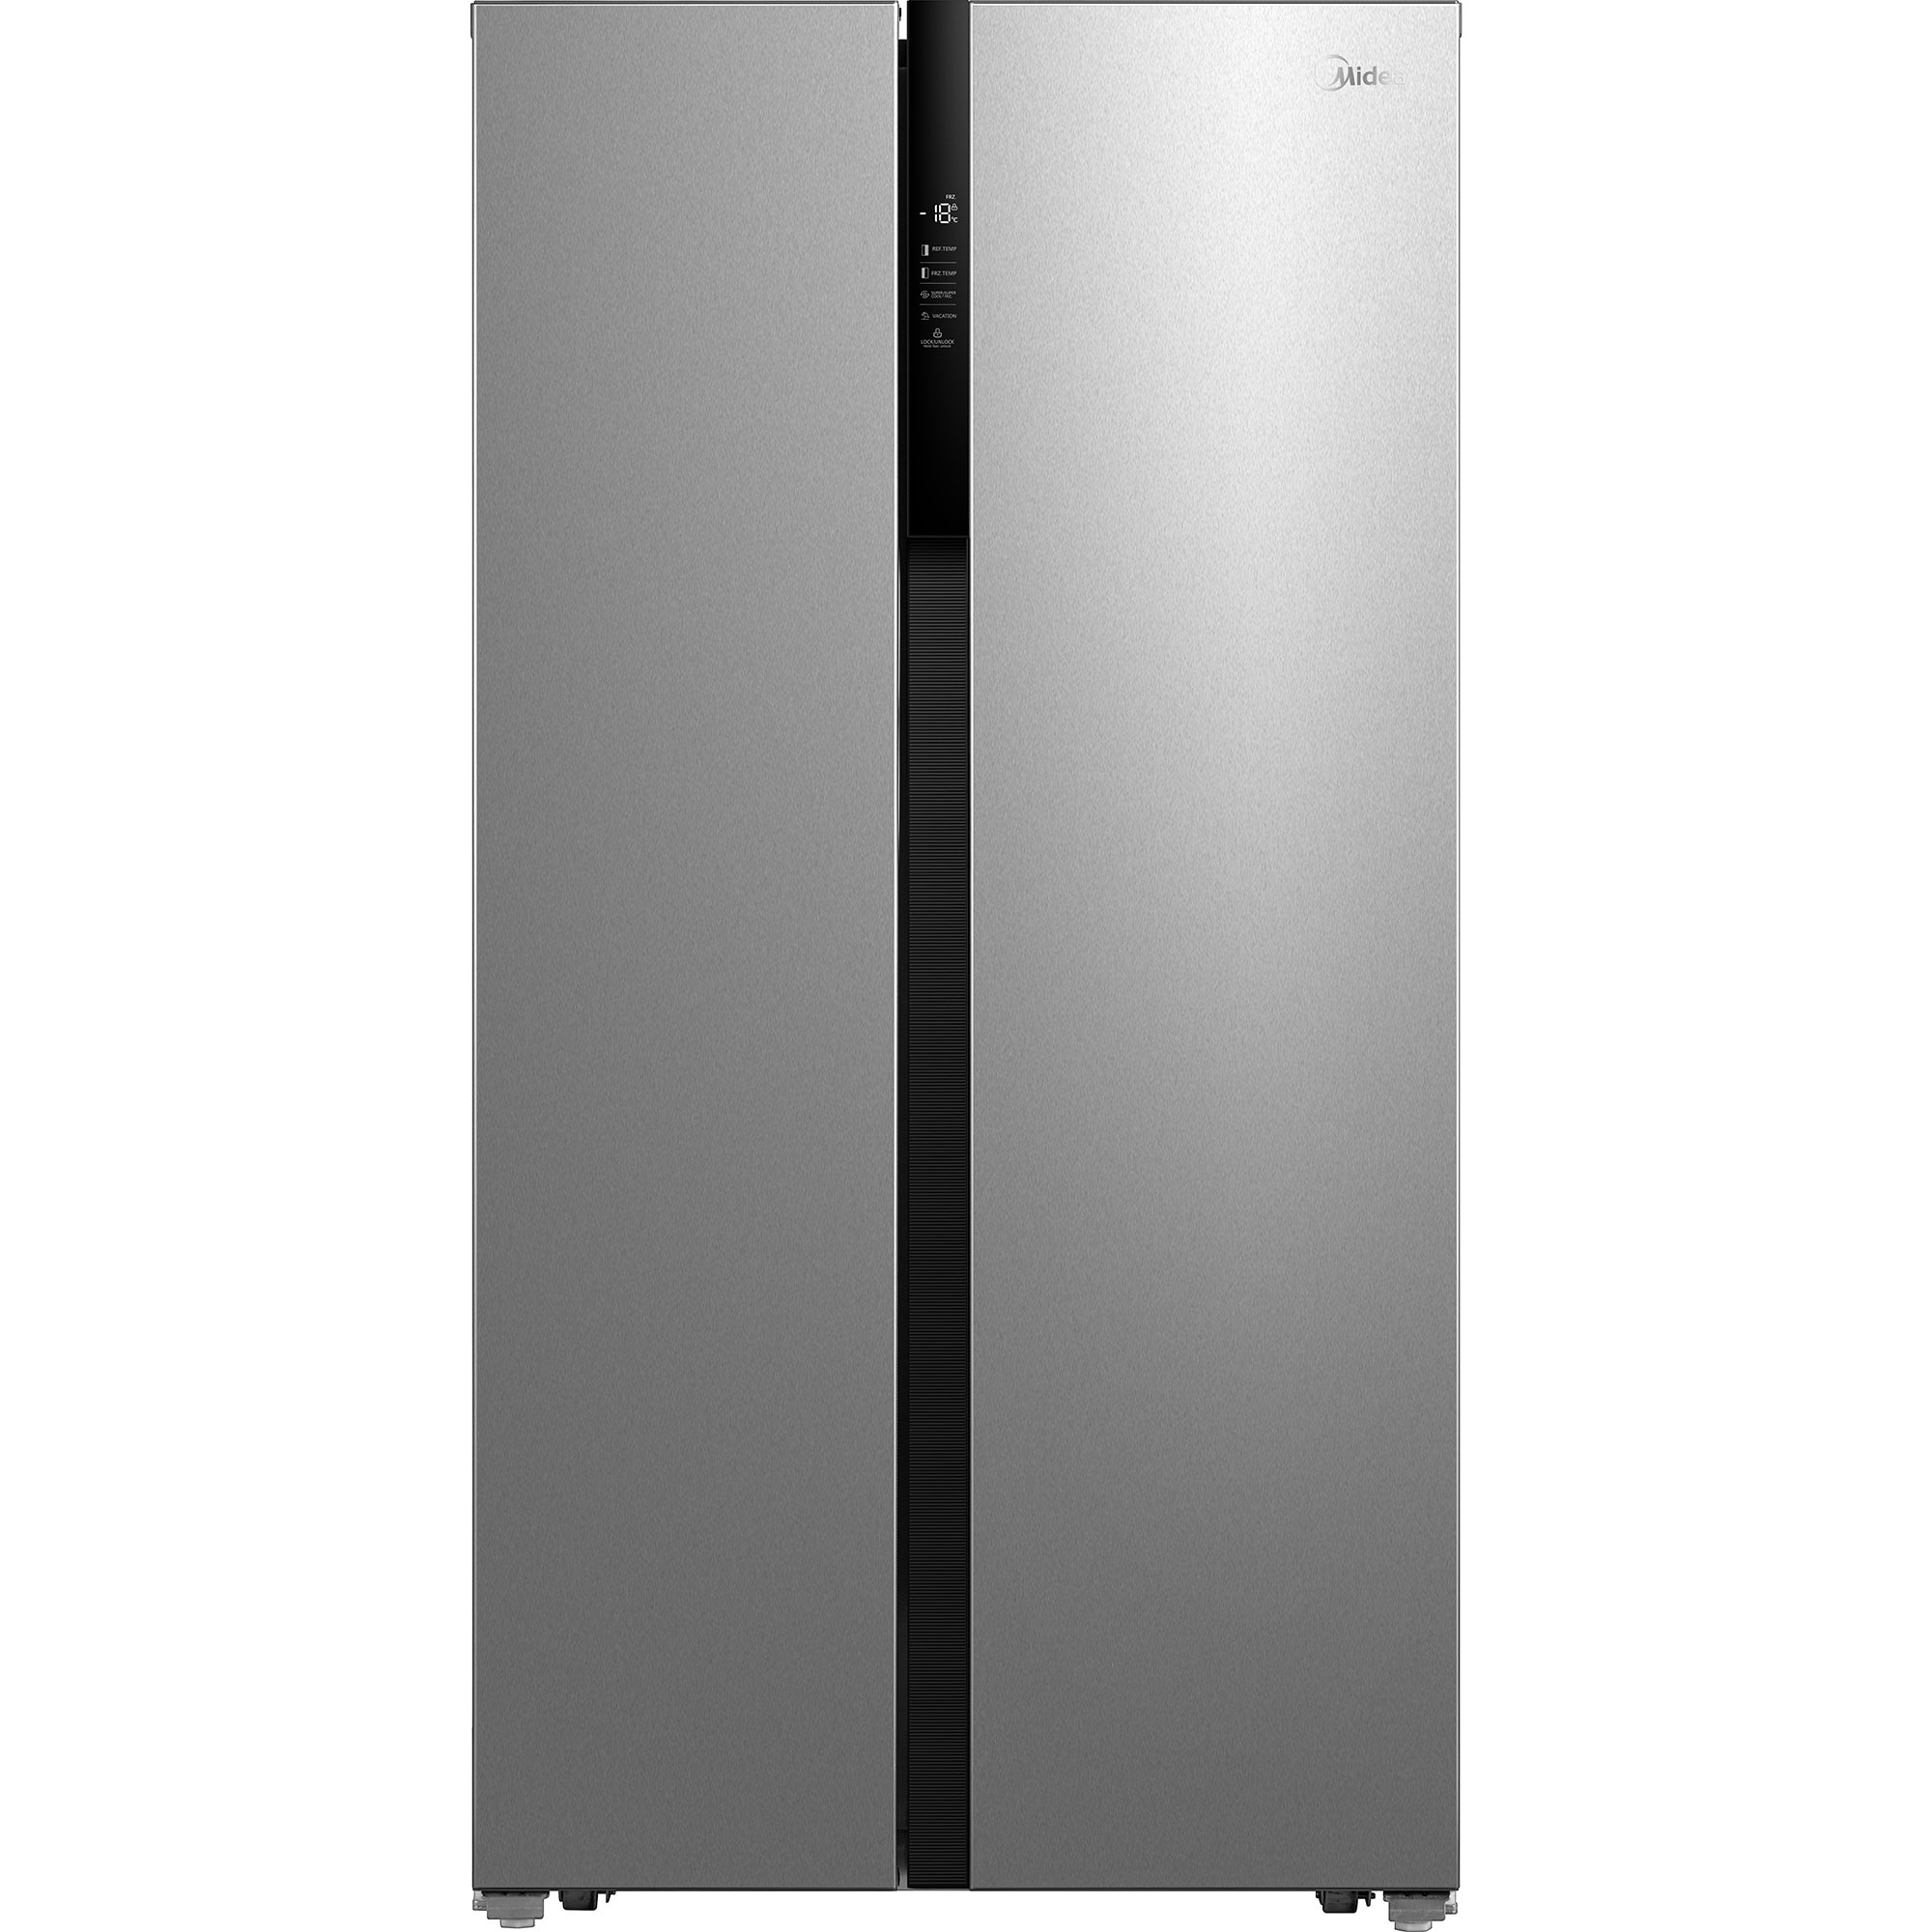 Fotografie Side by Side Midea HC-832WEN, 605l, Clasa A++, Display, Compressor Inverter, Total No Frost, H 180.5cm, Inox